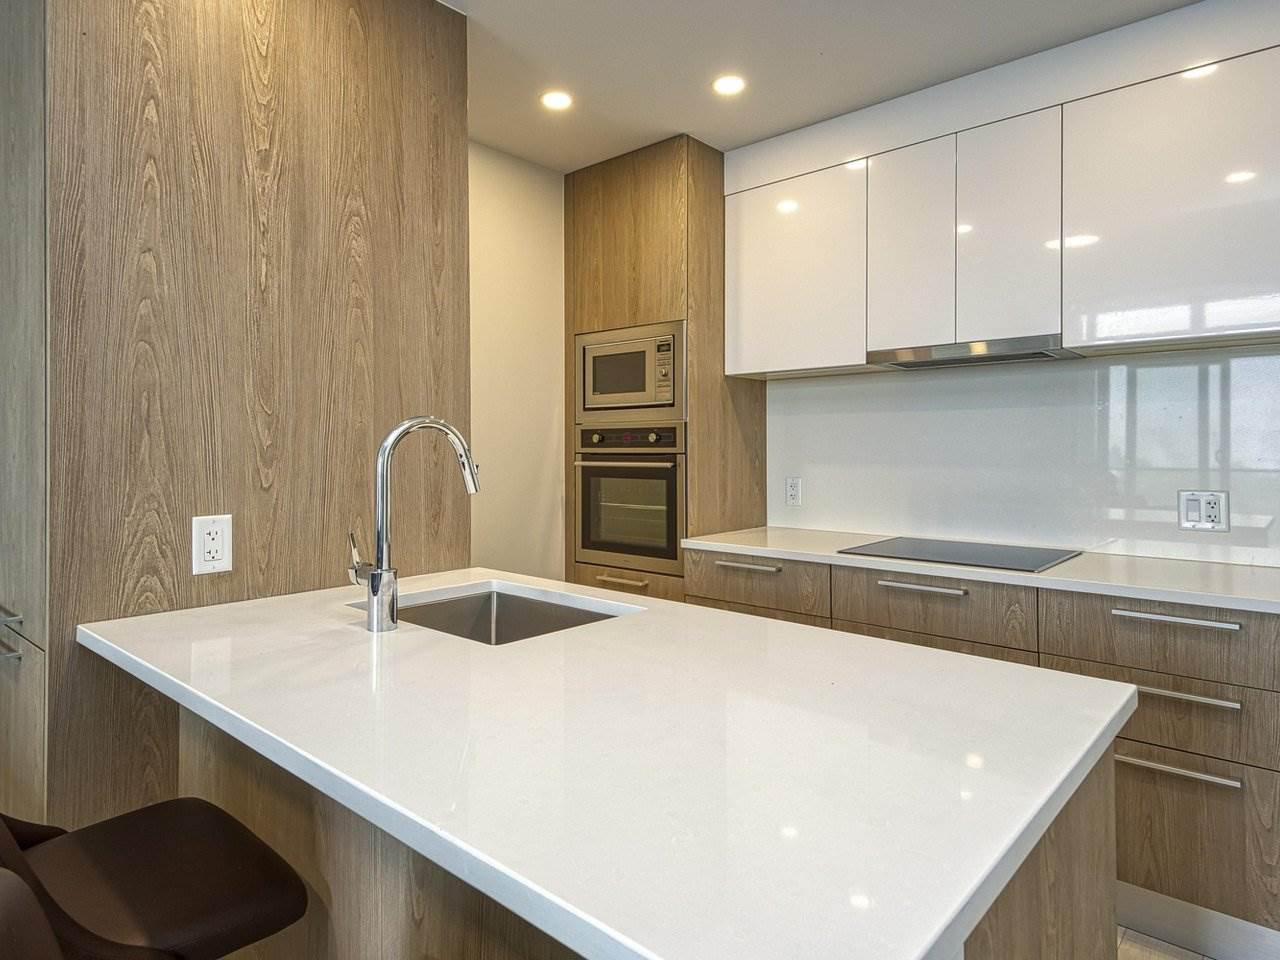 Main Photo: 507 2508 Watson Street in Vancouver: Mount Pleasant VE Condo for sale (Vancouver East)  : MLS®# R2498711